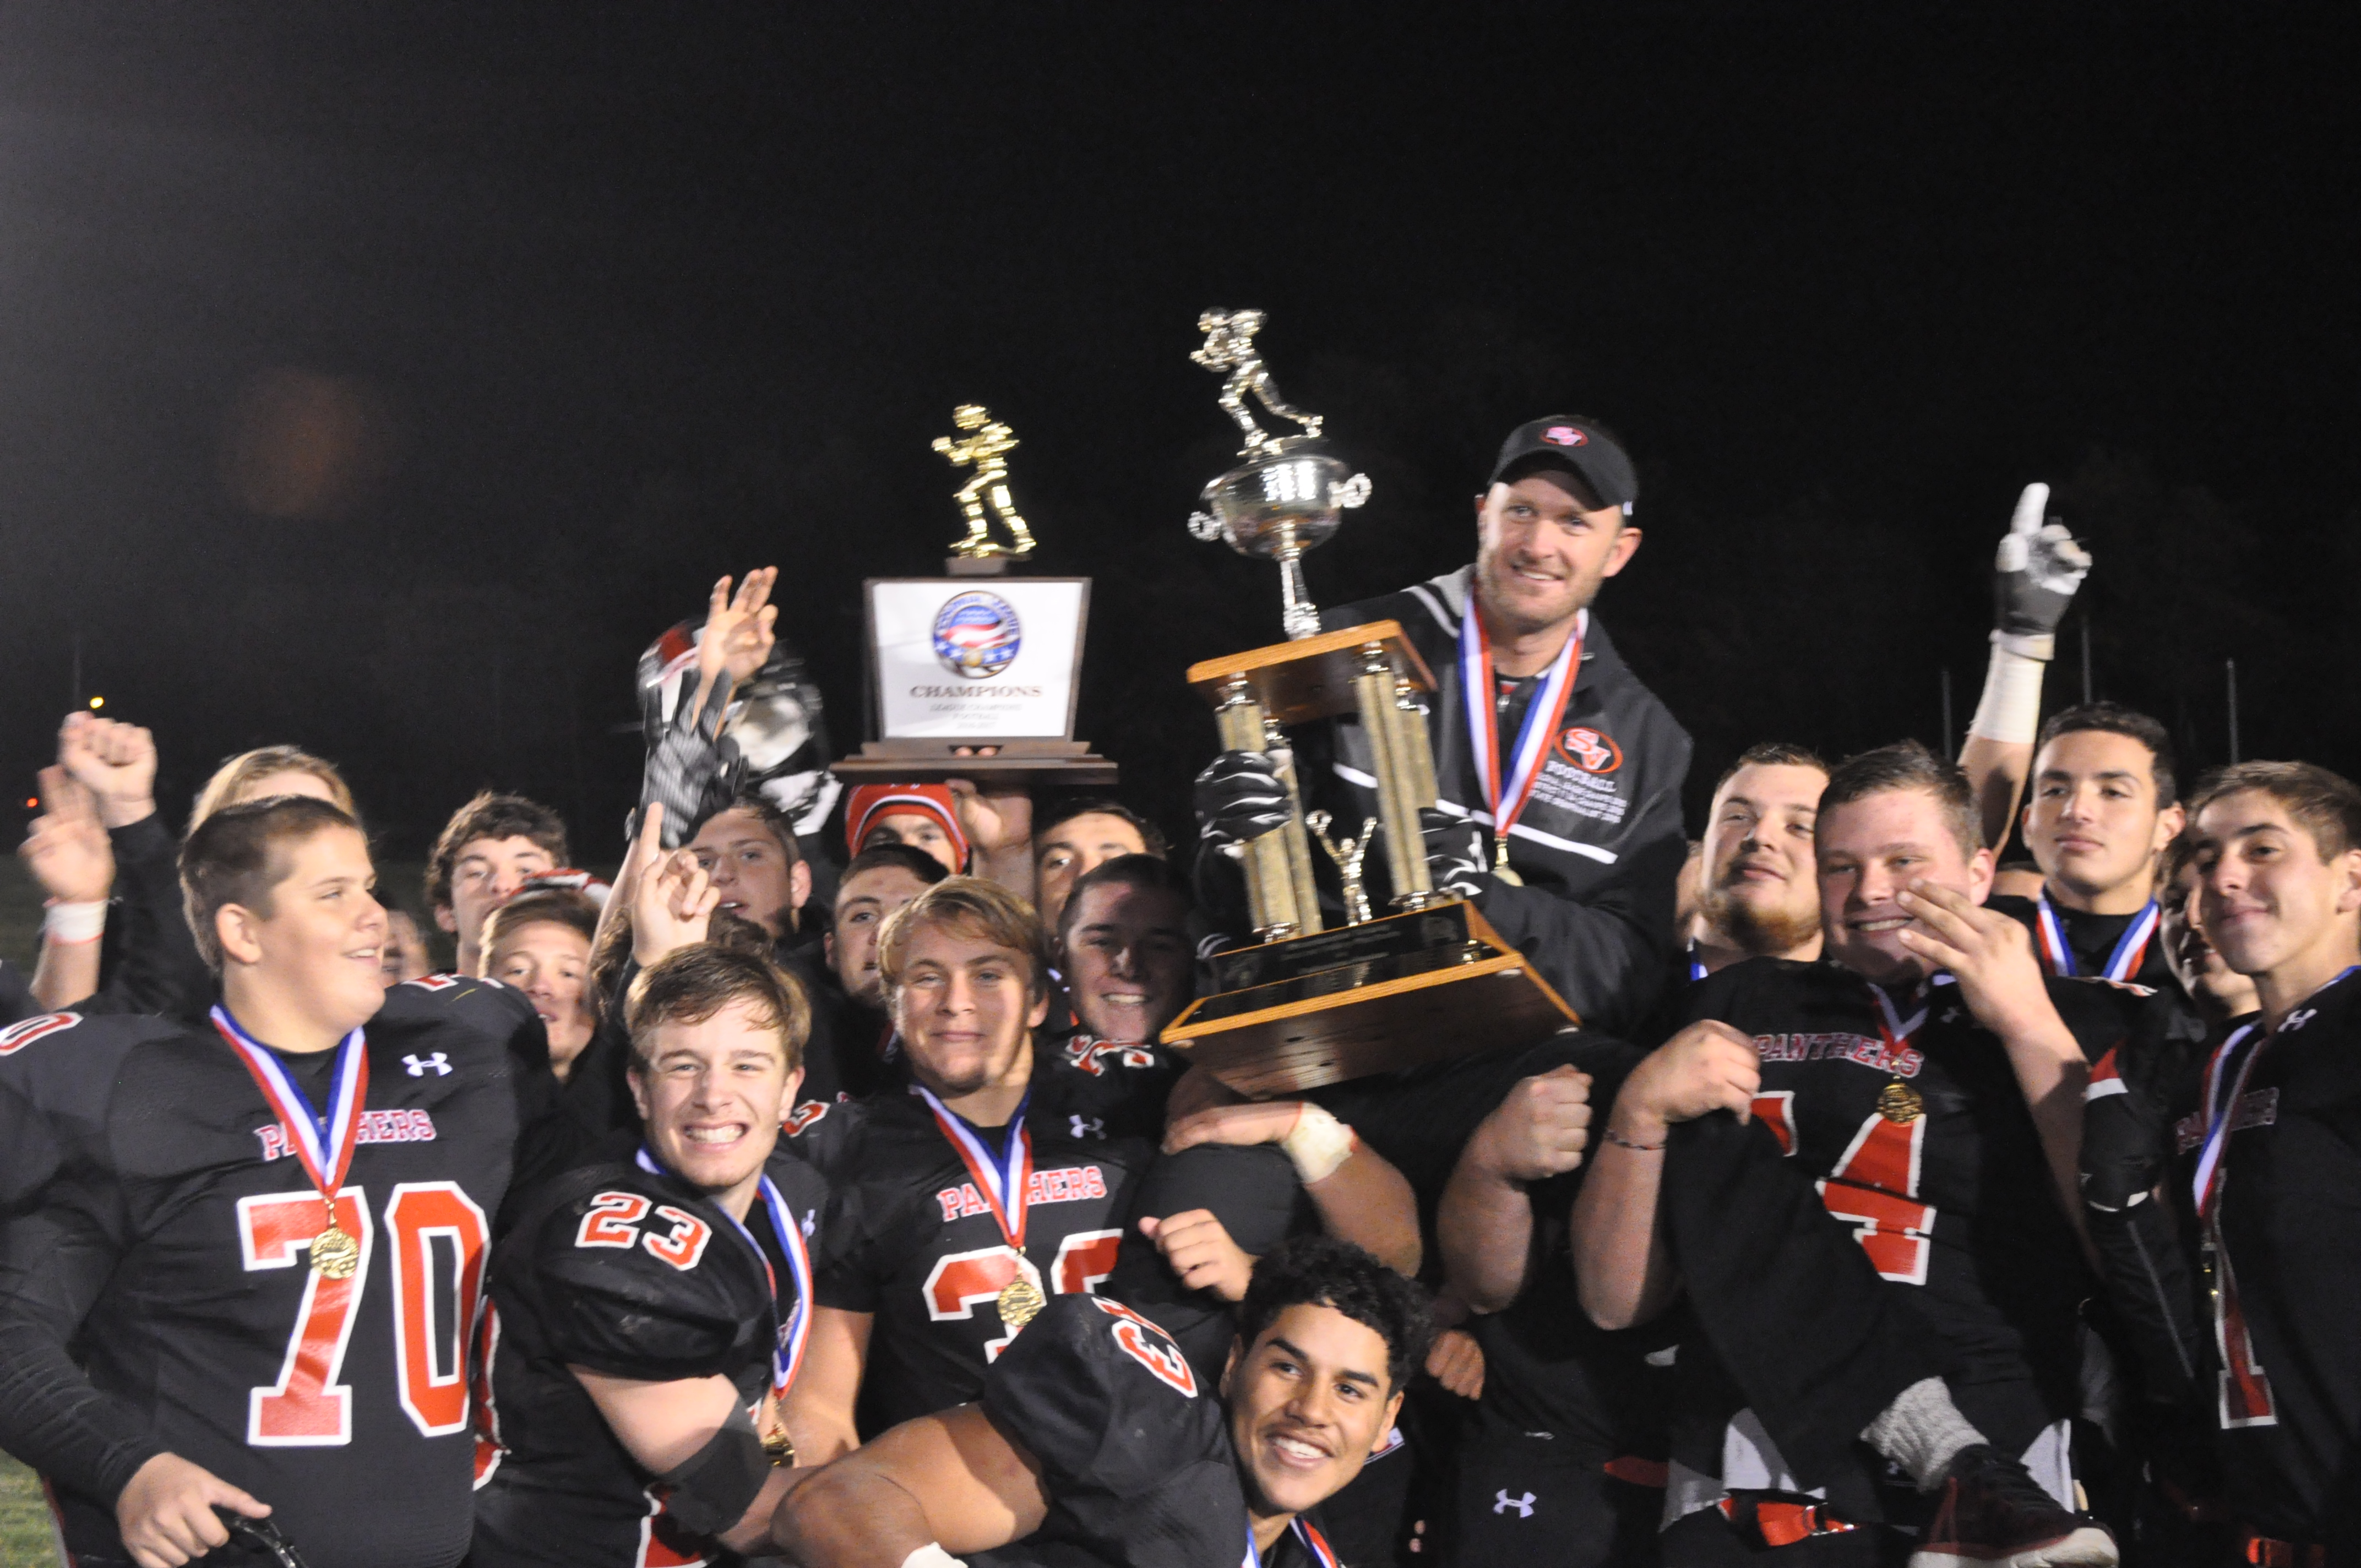 The Panthers give Coach Sams a championship ride.